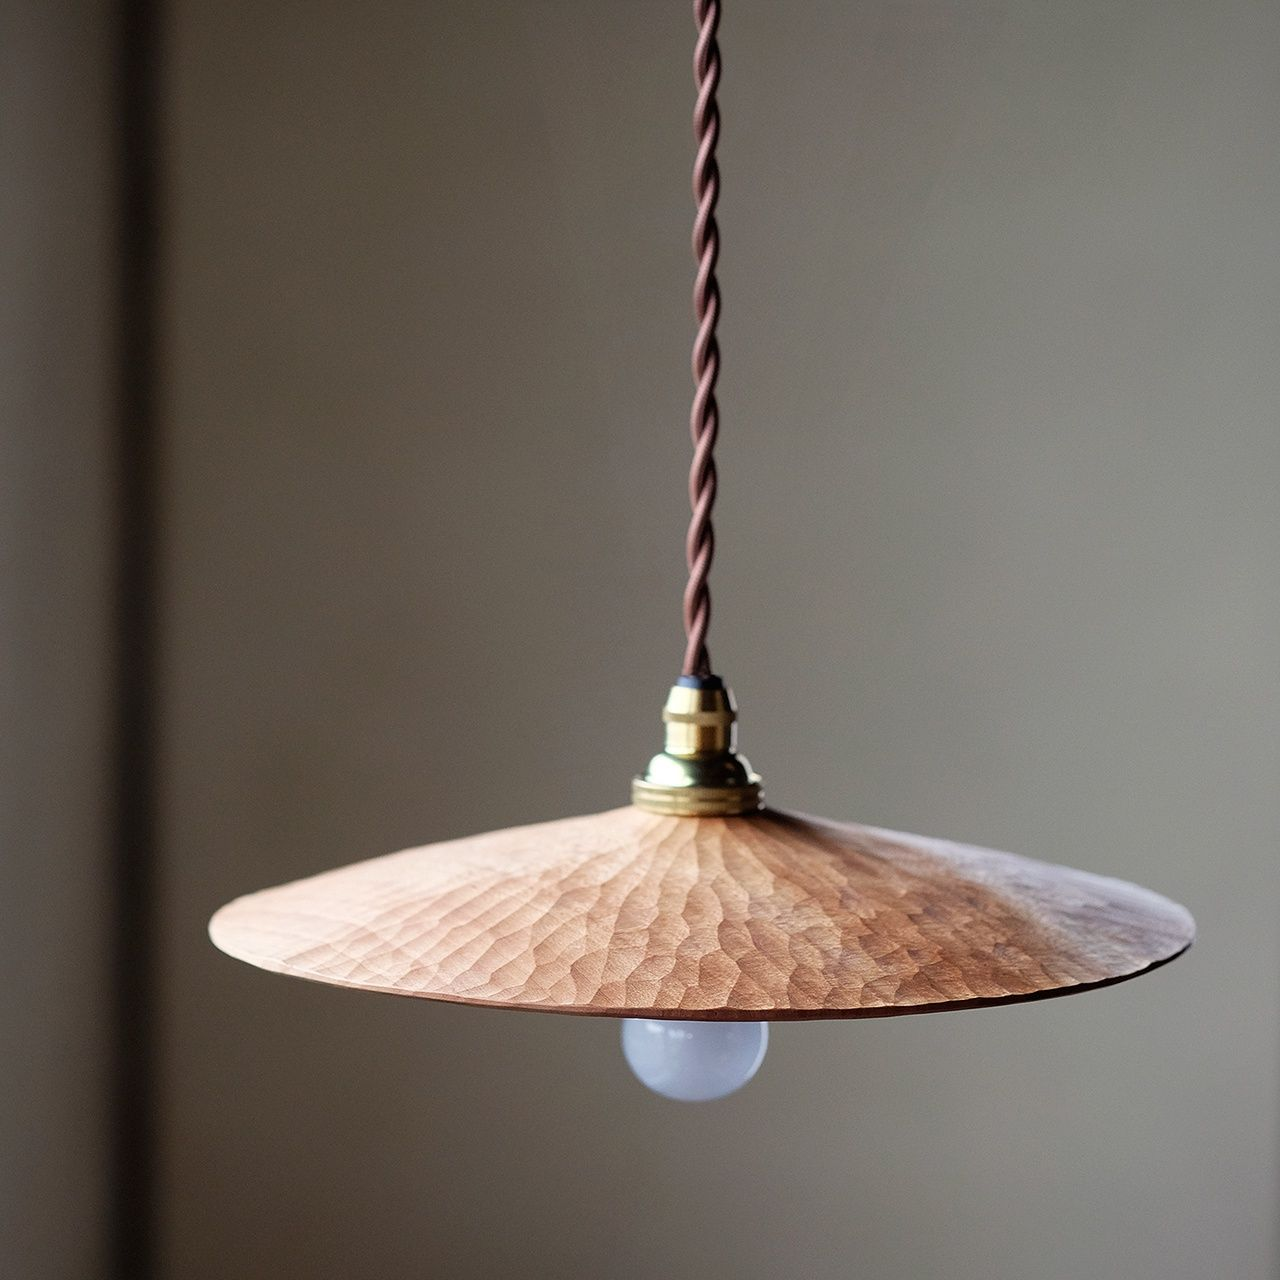 Wooden Lighting Pendants Hiroyuki Wantanabe Wooden Pendant Wood Stone And All